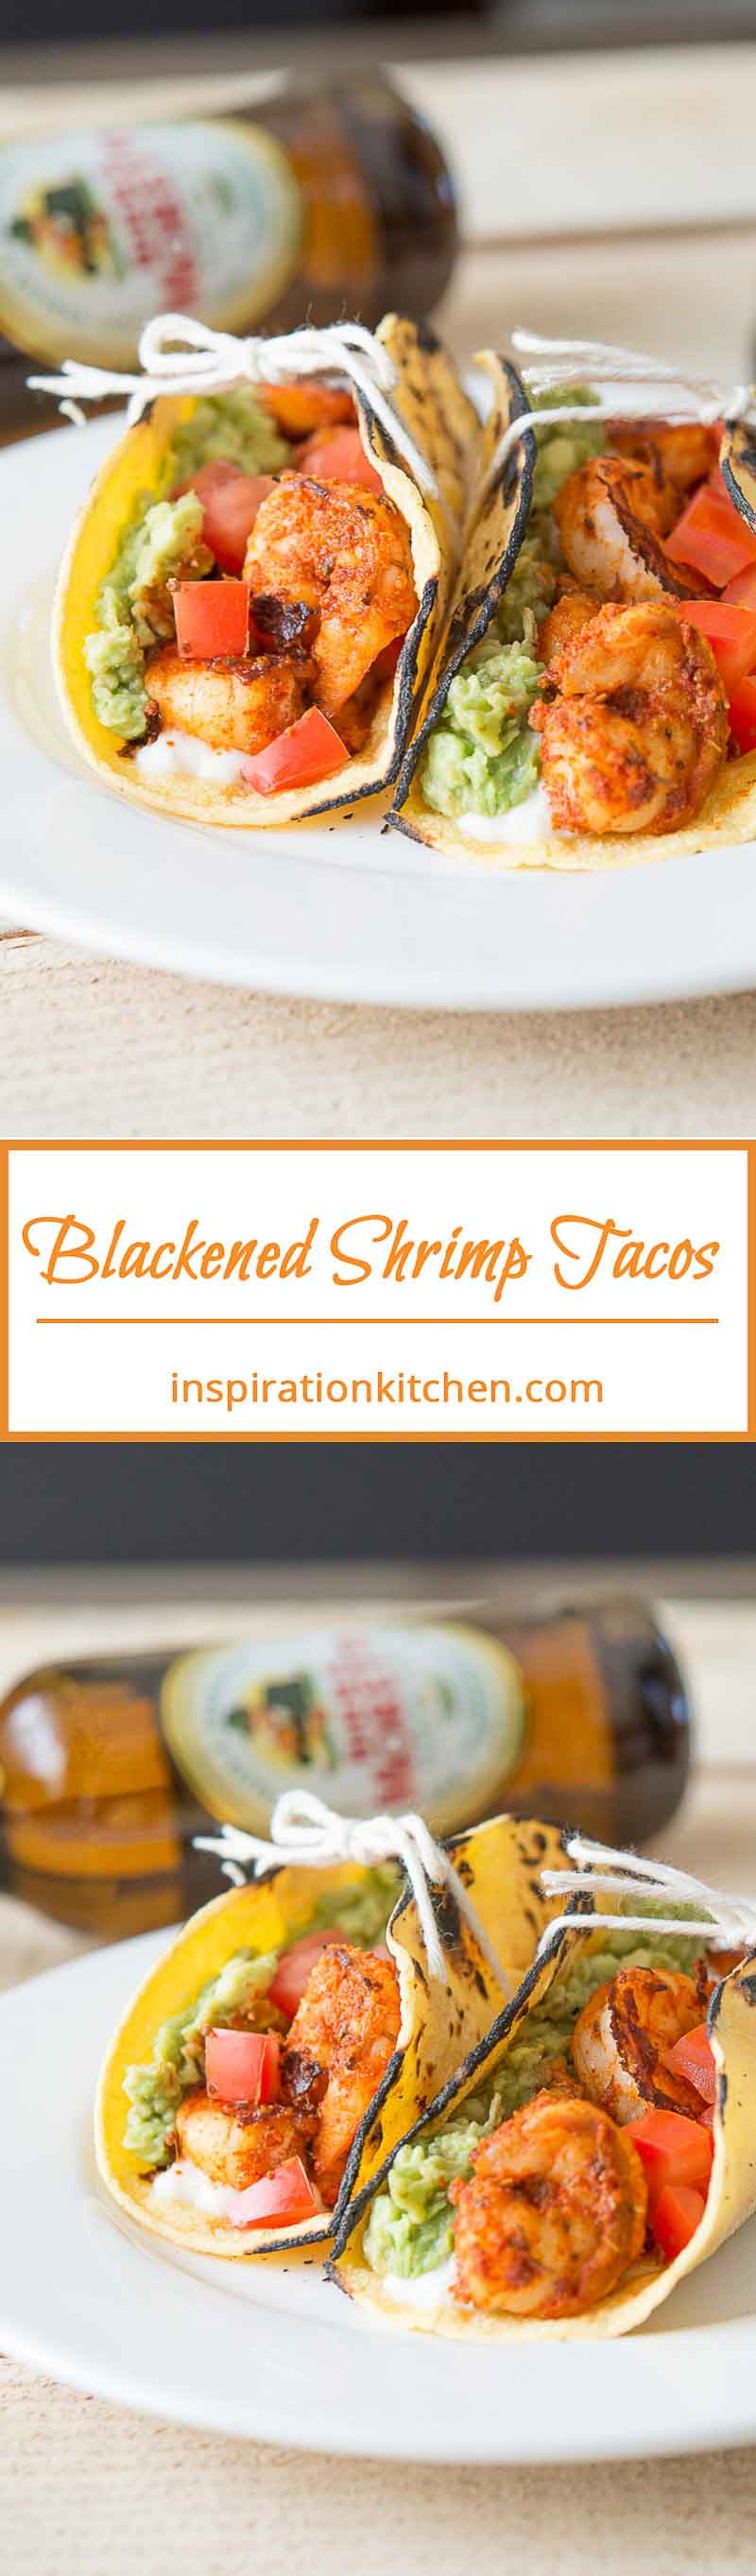 Blackened Shrimp Tacos Queso Fresco Collage | Inspiration Kitchen